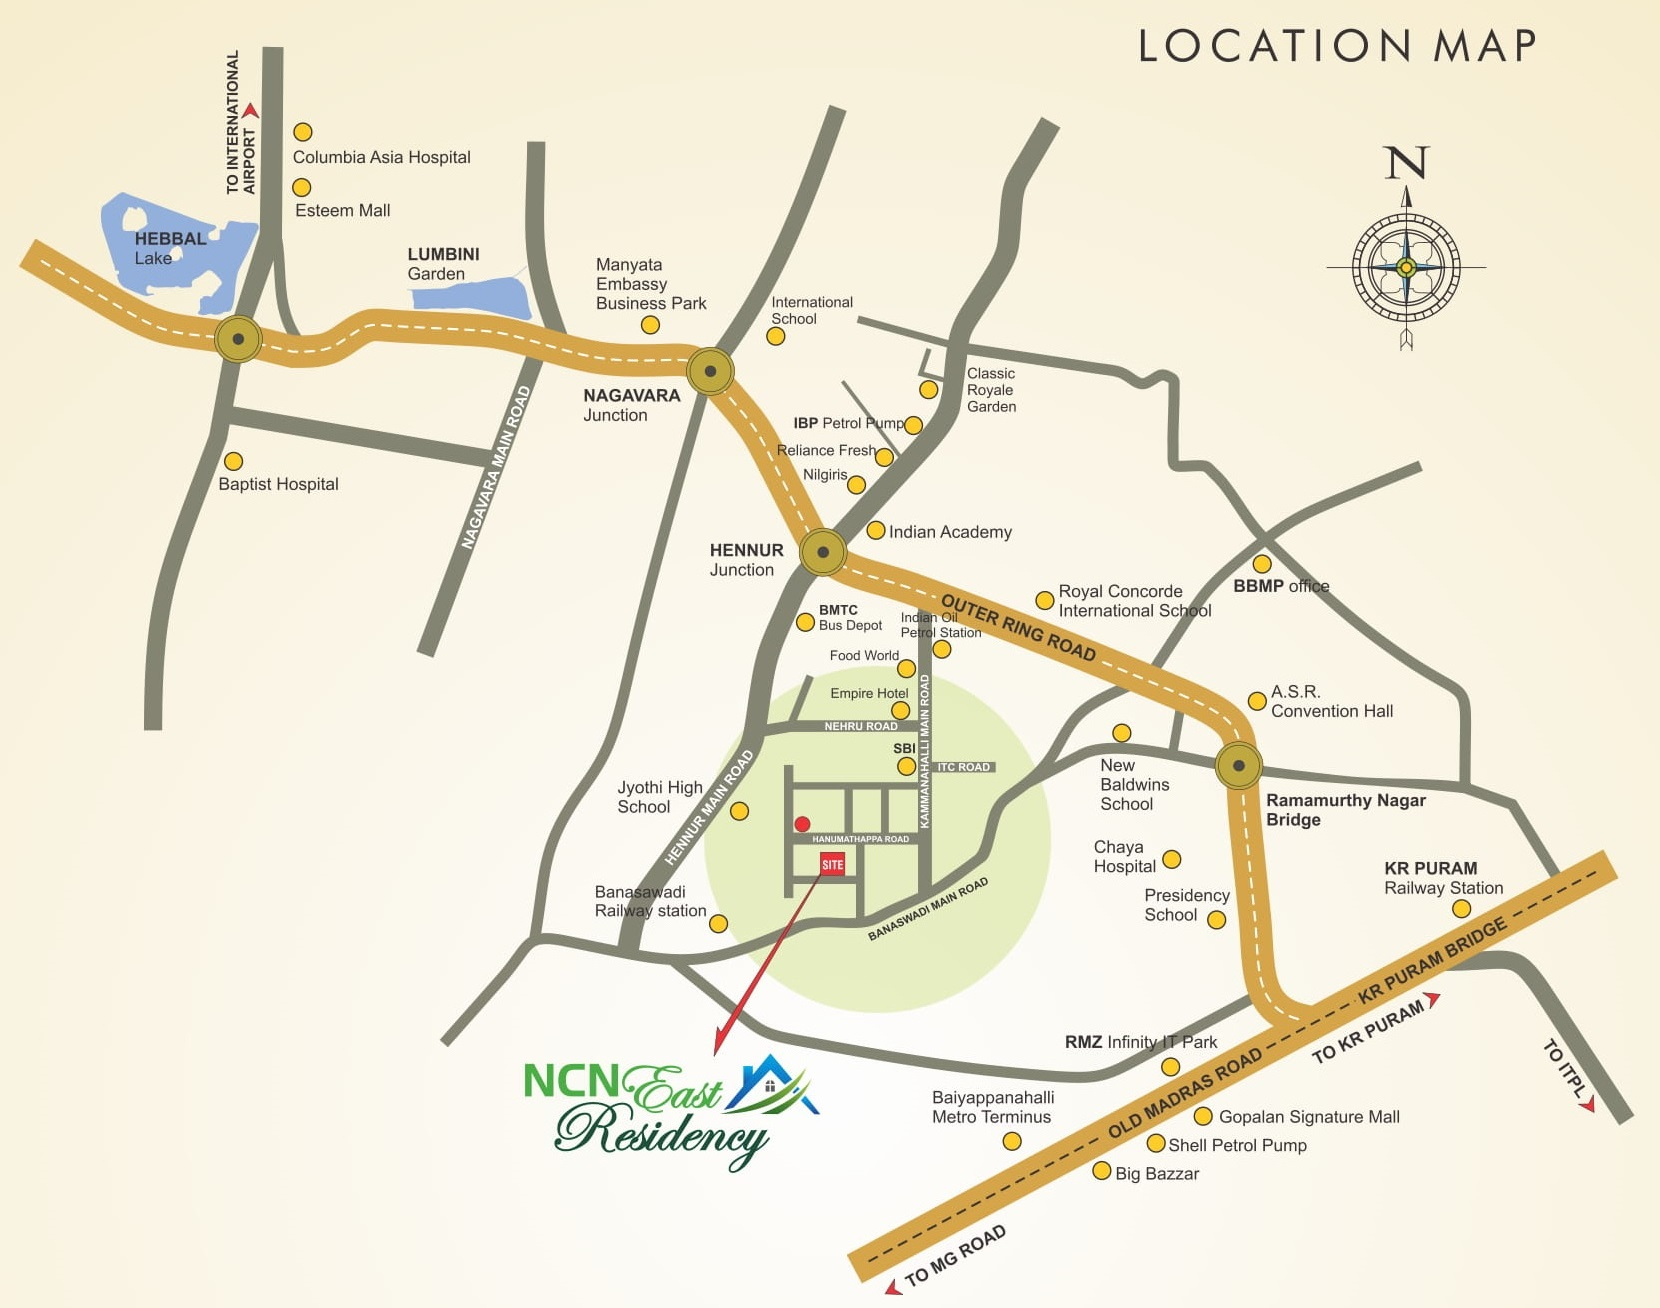 NCN East Residency Location Map